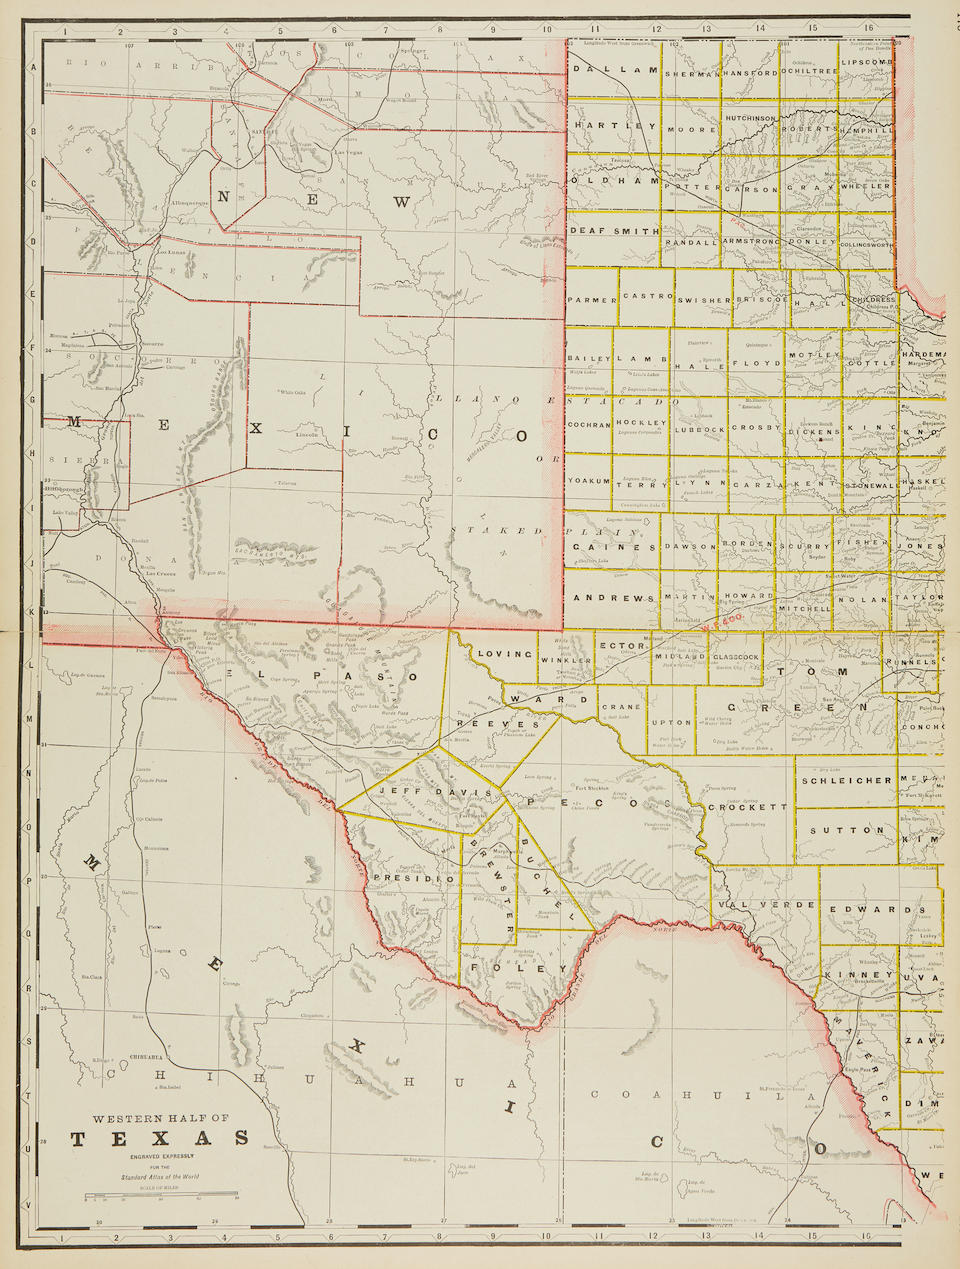 Texas. Mitchell, Samuel Augustus. County Map of the State of Texas. Philadelphia: 1878.